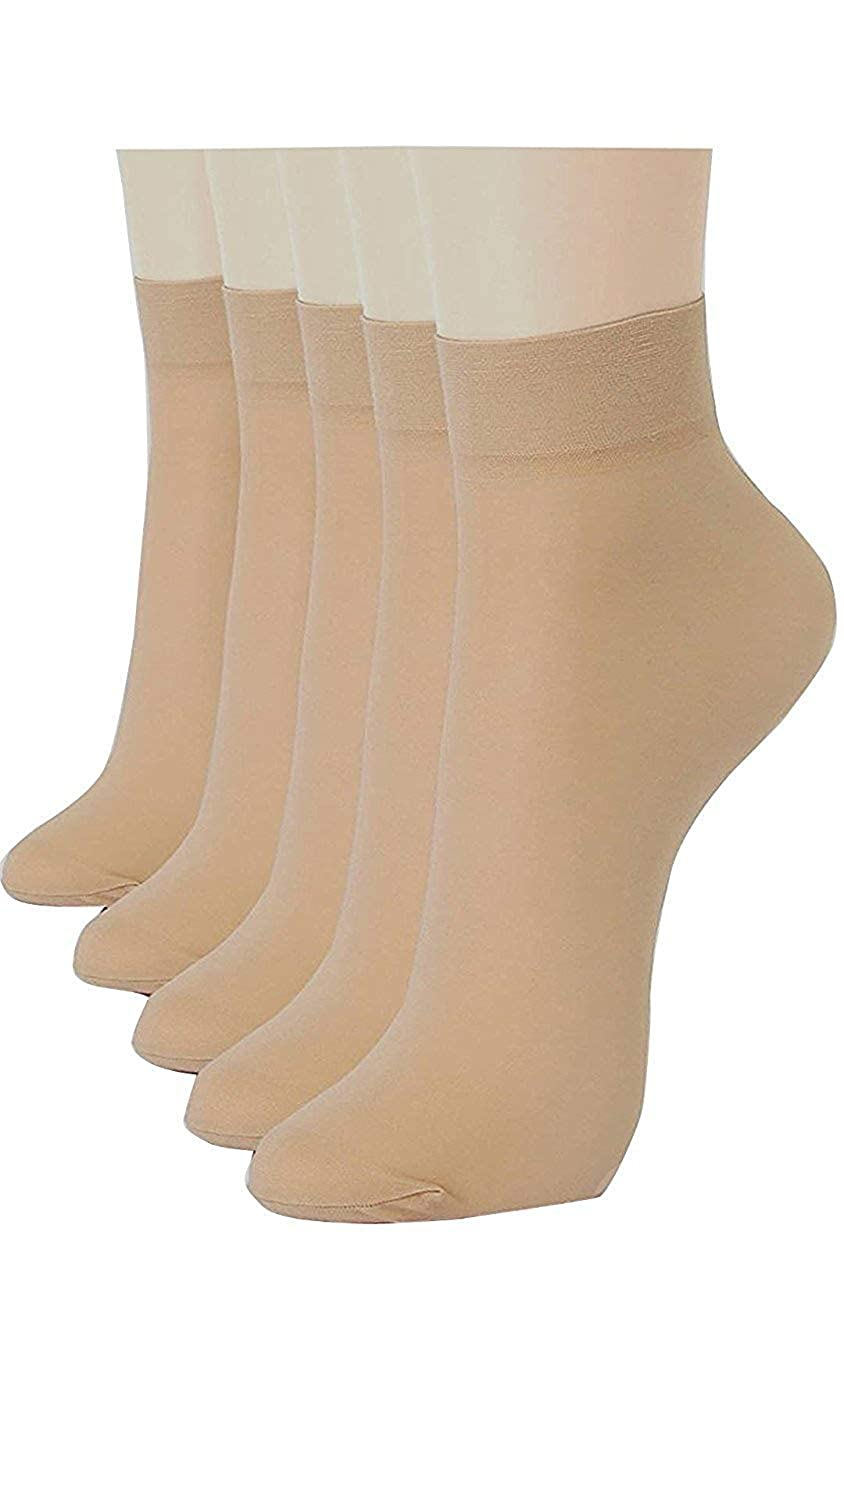 SOCKS Women's Cotton Sock with Toe (SHUIRBCSHR, Transparent, Free Size) - Pack of 5